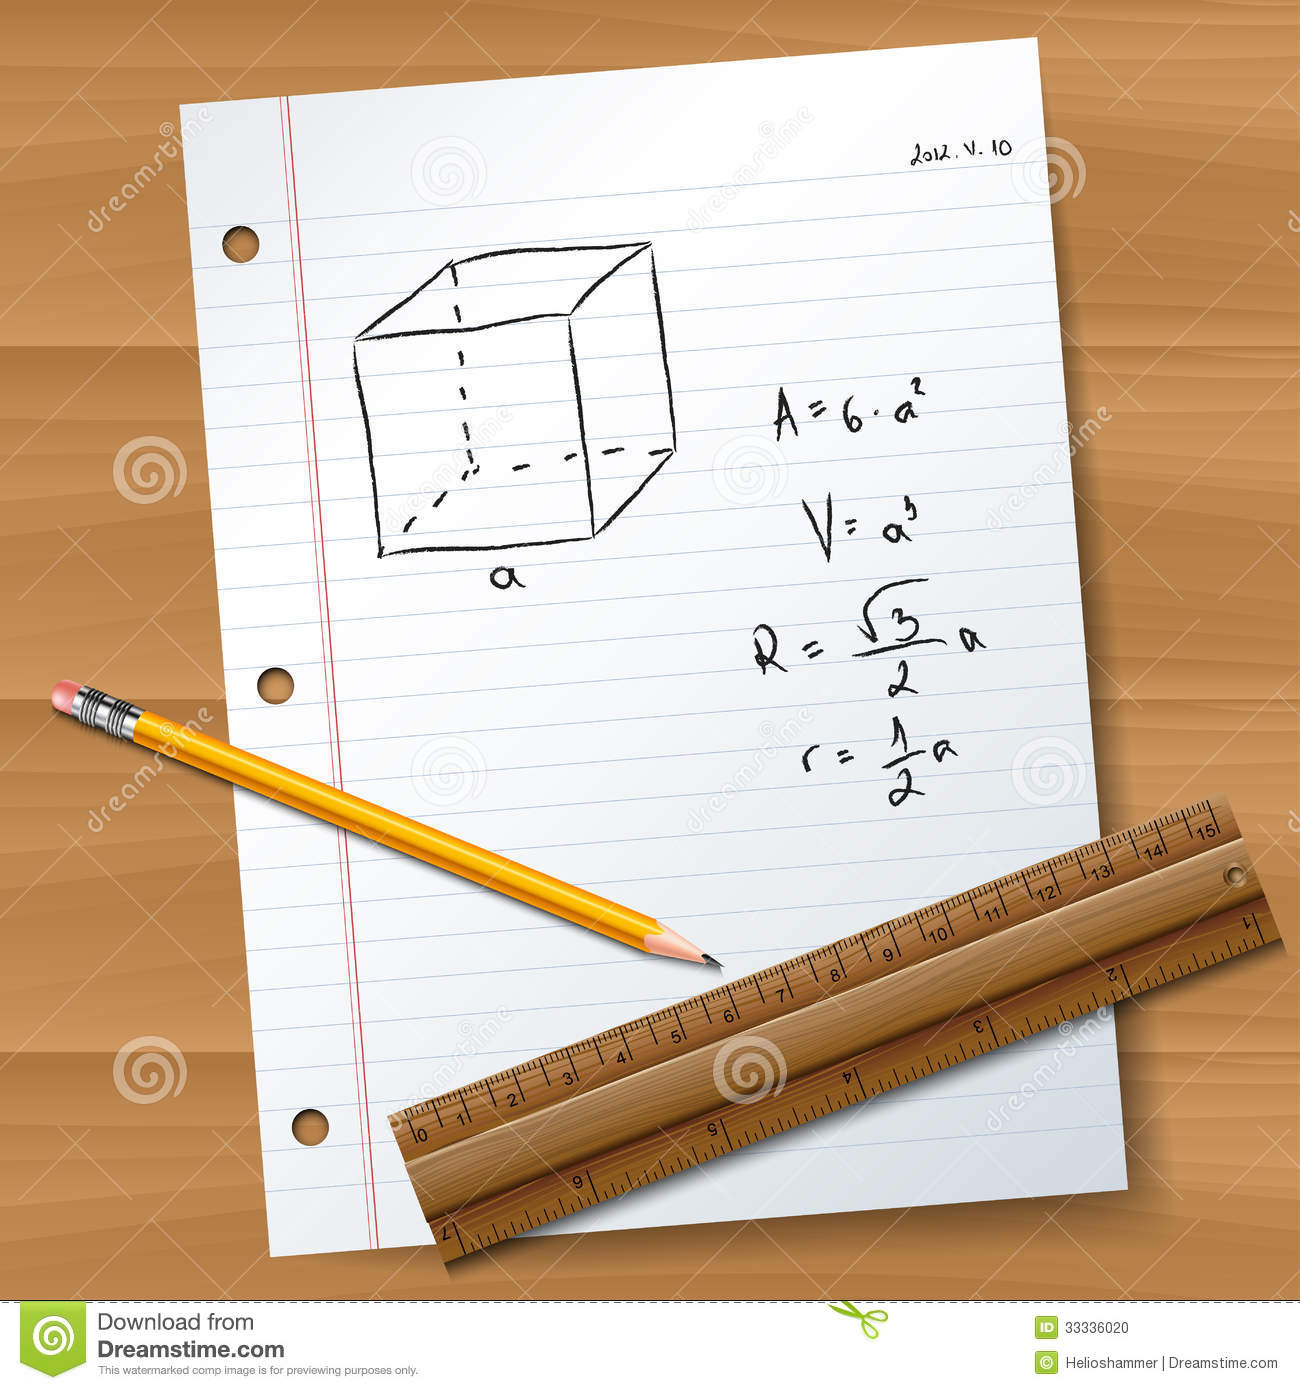 Paper With Pencil And Ruler Stock Photo - Image: 33336020